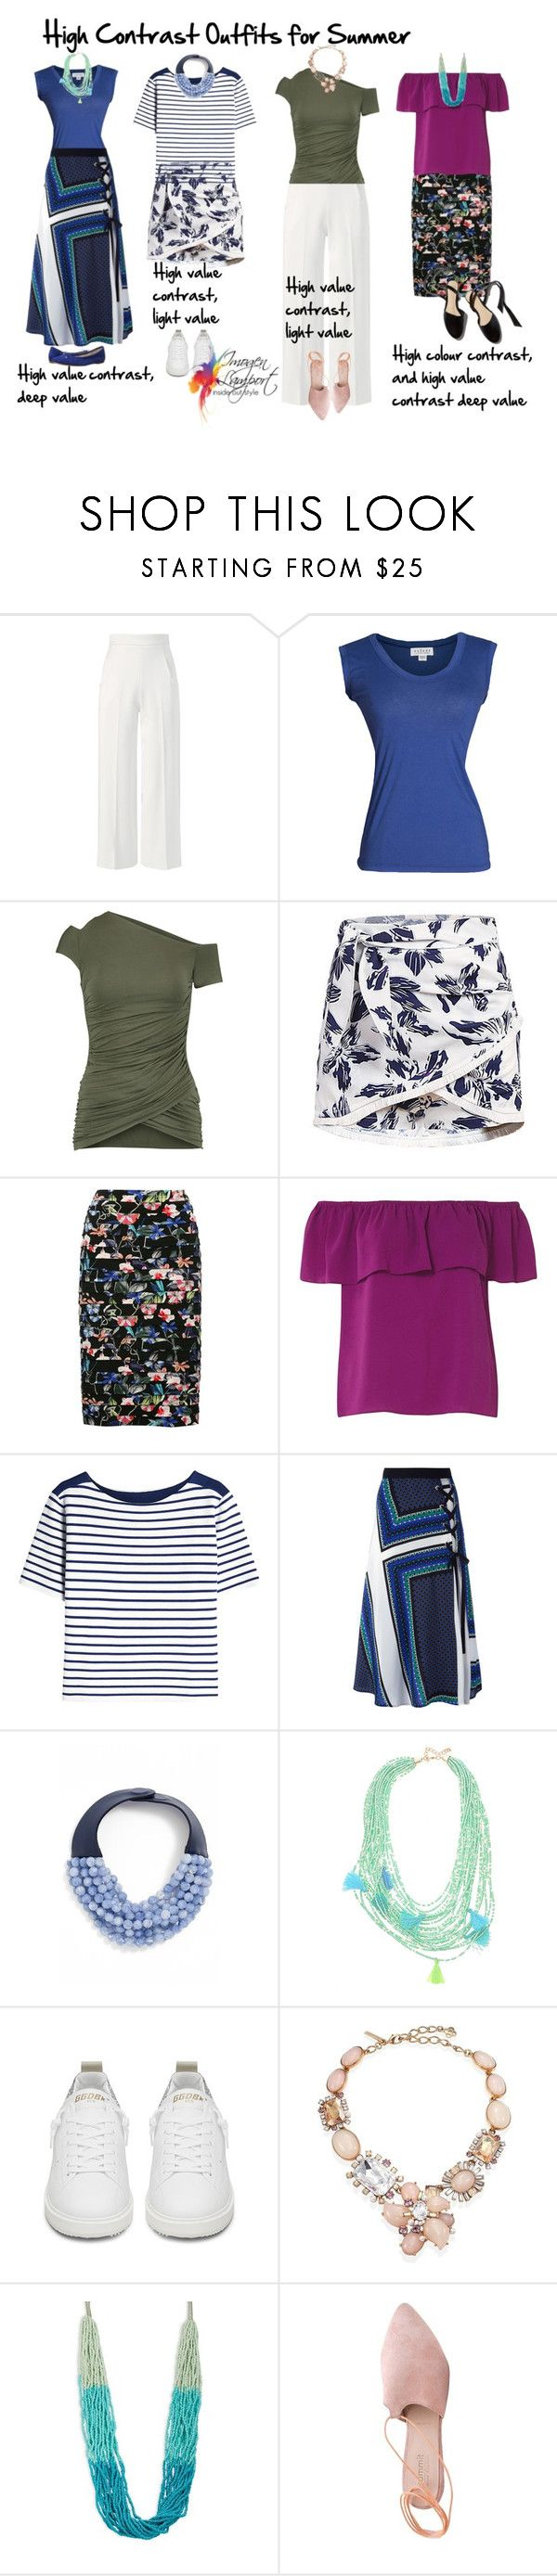 """""""high contrast outfits for summer"""" by imogenl ❤ liked on Polyvore featuring Roland Mouret, Velvet by Graham & Spencer, Bailey 44, M&Co, Dorothy Perkins, Burberry, MSGM, Fairchild Baldwin, Golden Goose and Oscar de la Renta"""